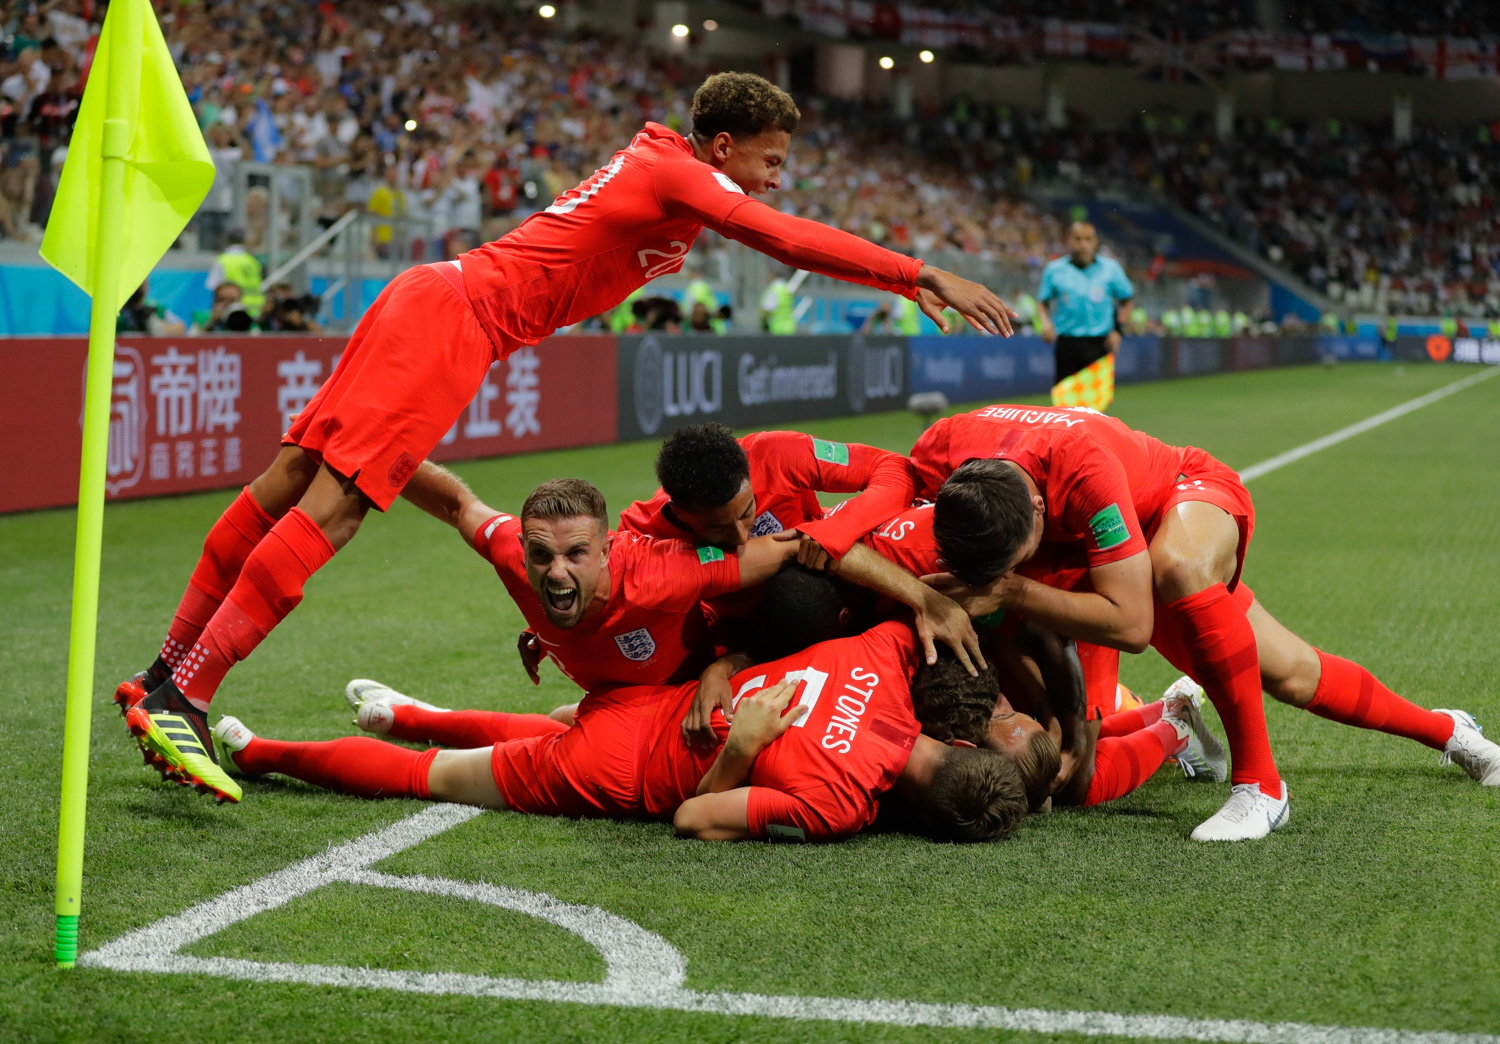 "<div class=""meta image-caption""><div class=""origin-logo origin-image none""><span>none</span></div><span class=""caption-text"">England's team celebrate after scoring their side's opening goal against Tunisia during the group G match between Tunisia and England (/Sergei Grits/AP Photo)</span></div>"